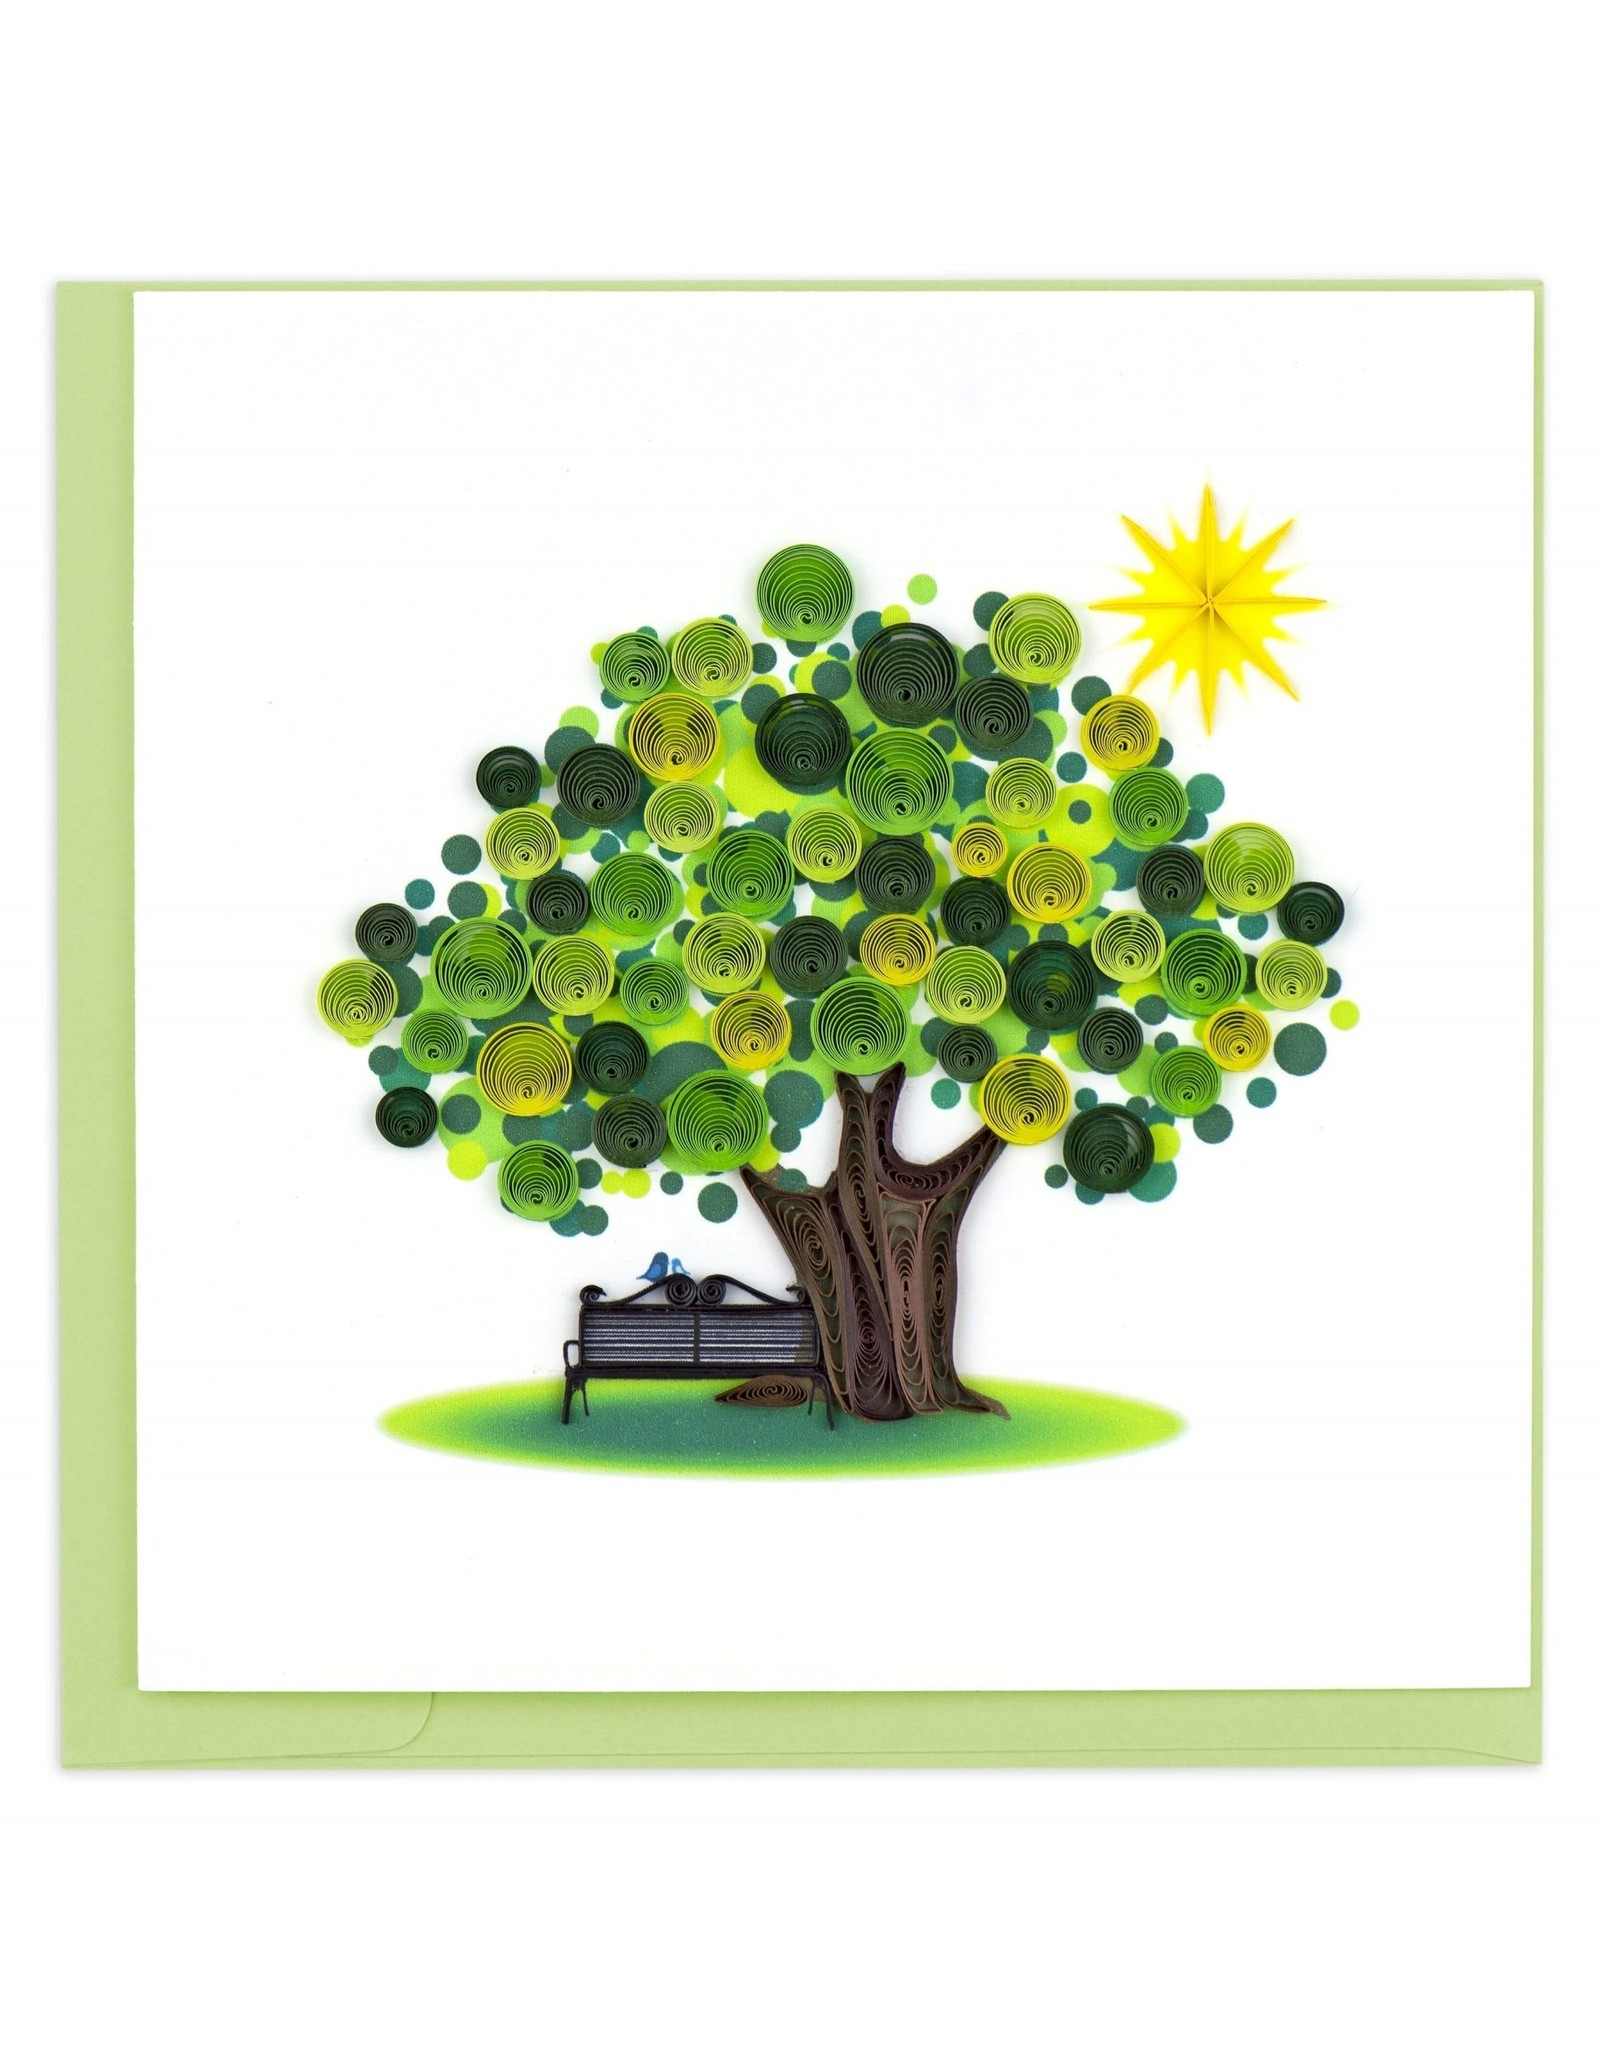 quillingcard Quilled Summer Tree Card, Vietnam